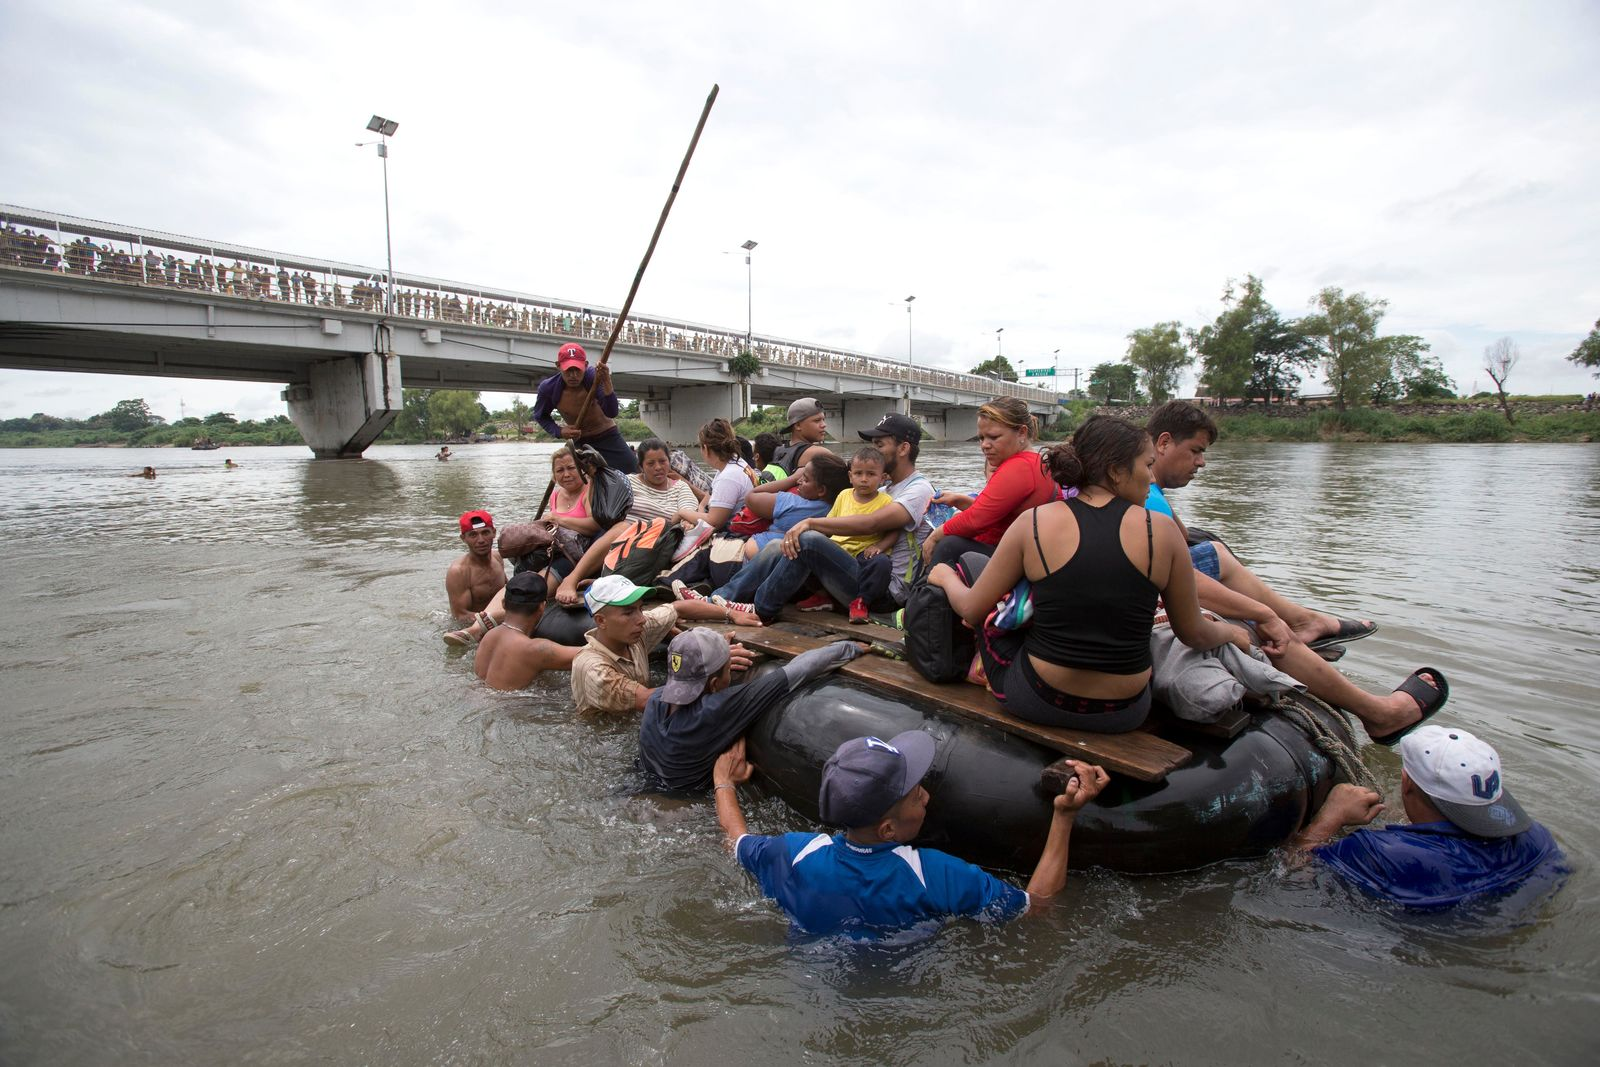 A group of Central American migrants cross the Suchiate River aboard a raft made out of tractor inner tubes and wooden planks, on the the border between Guatemala and Mexico, in Ciudad Hidalgo, Mexico, Saturday, Oct. 20, 2018. (AP Photo/Moises Castillo)